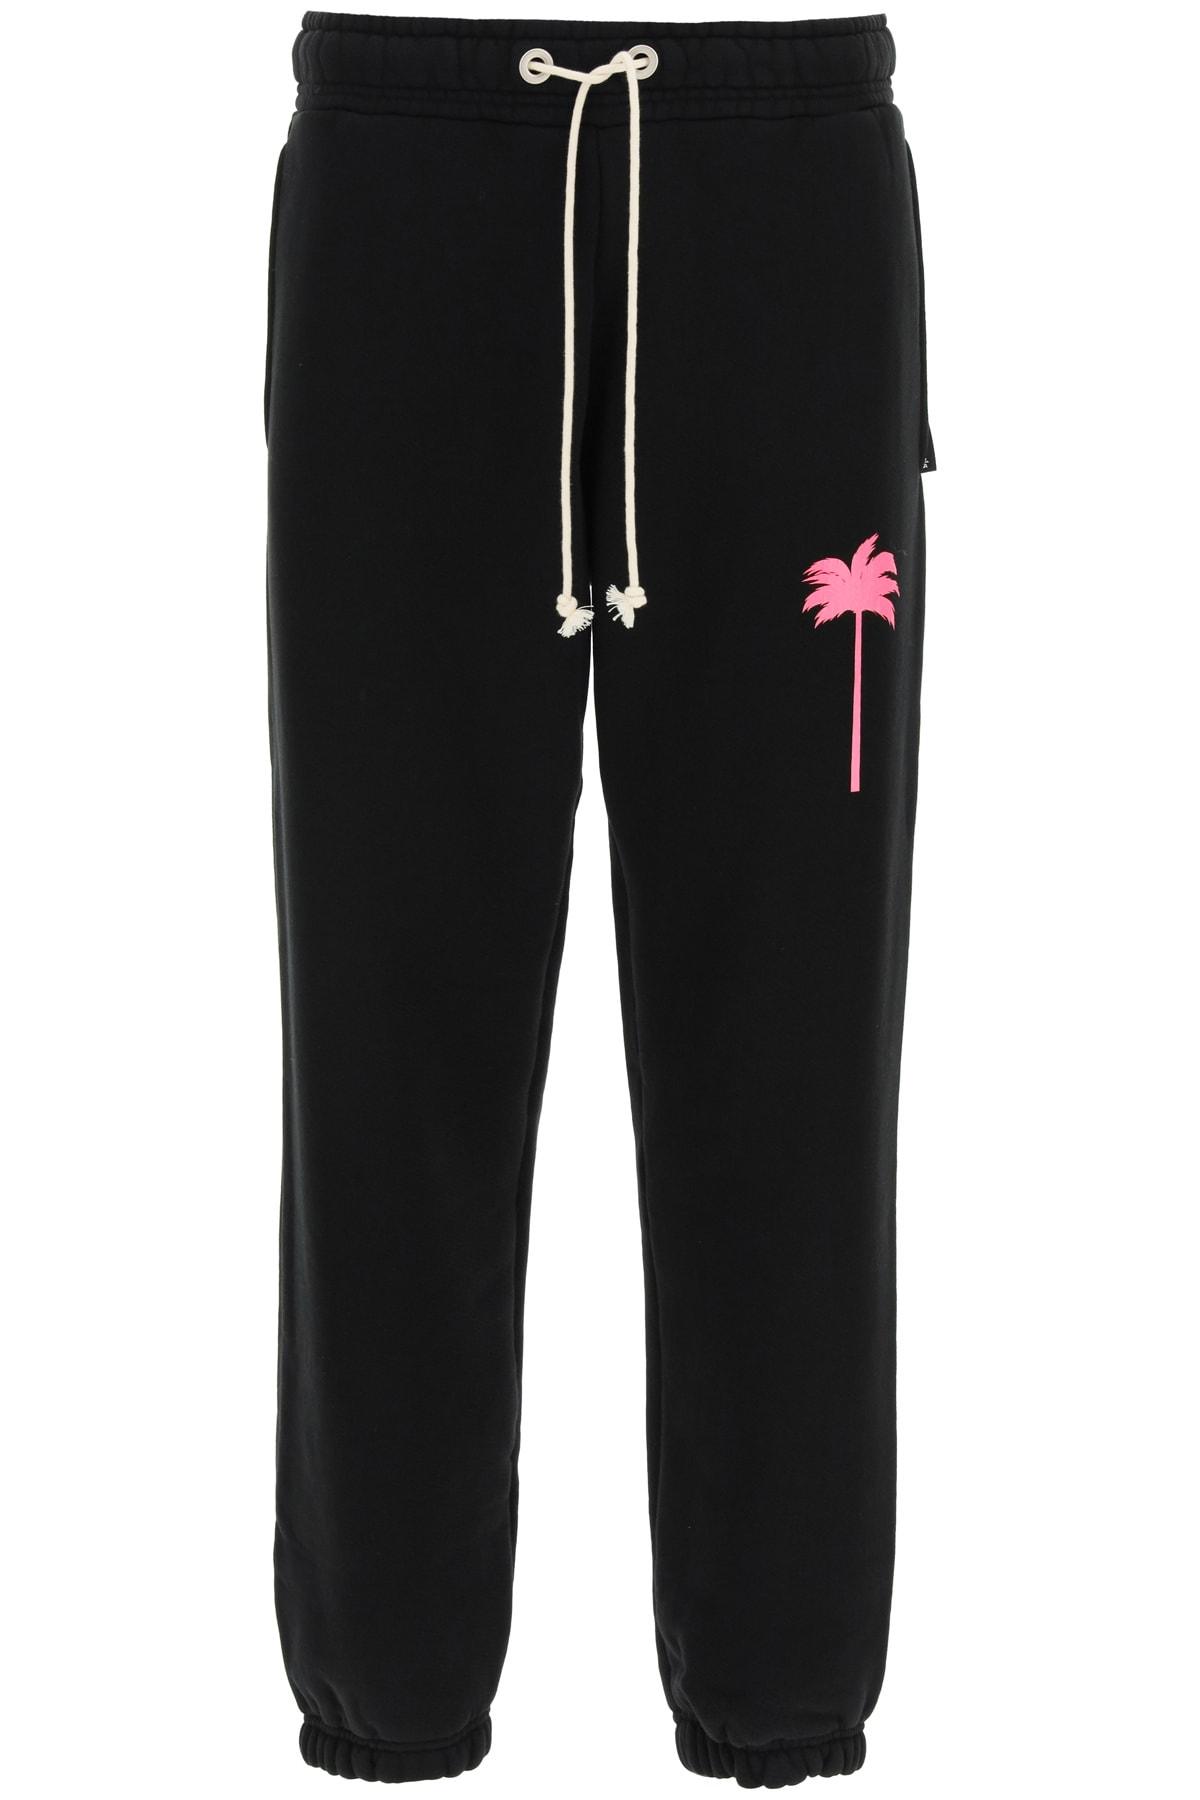 Palm Angels NEON PALM TREE PRINT JOGGERS